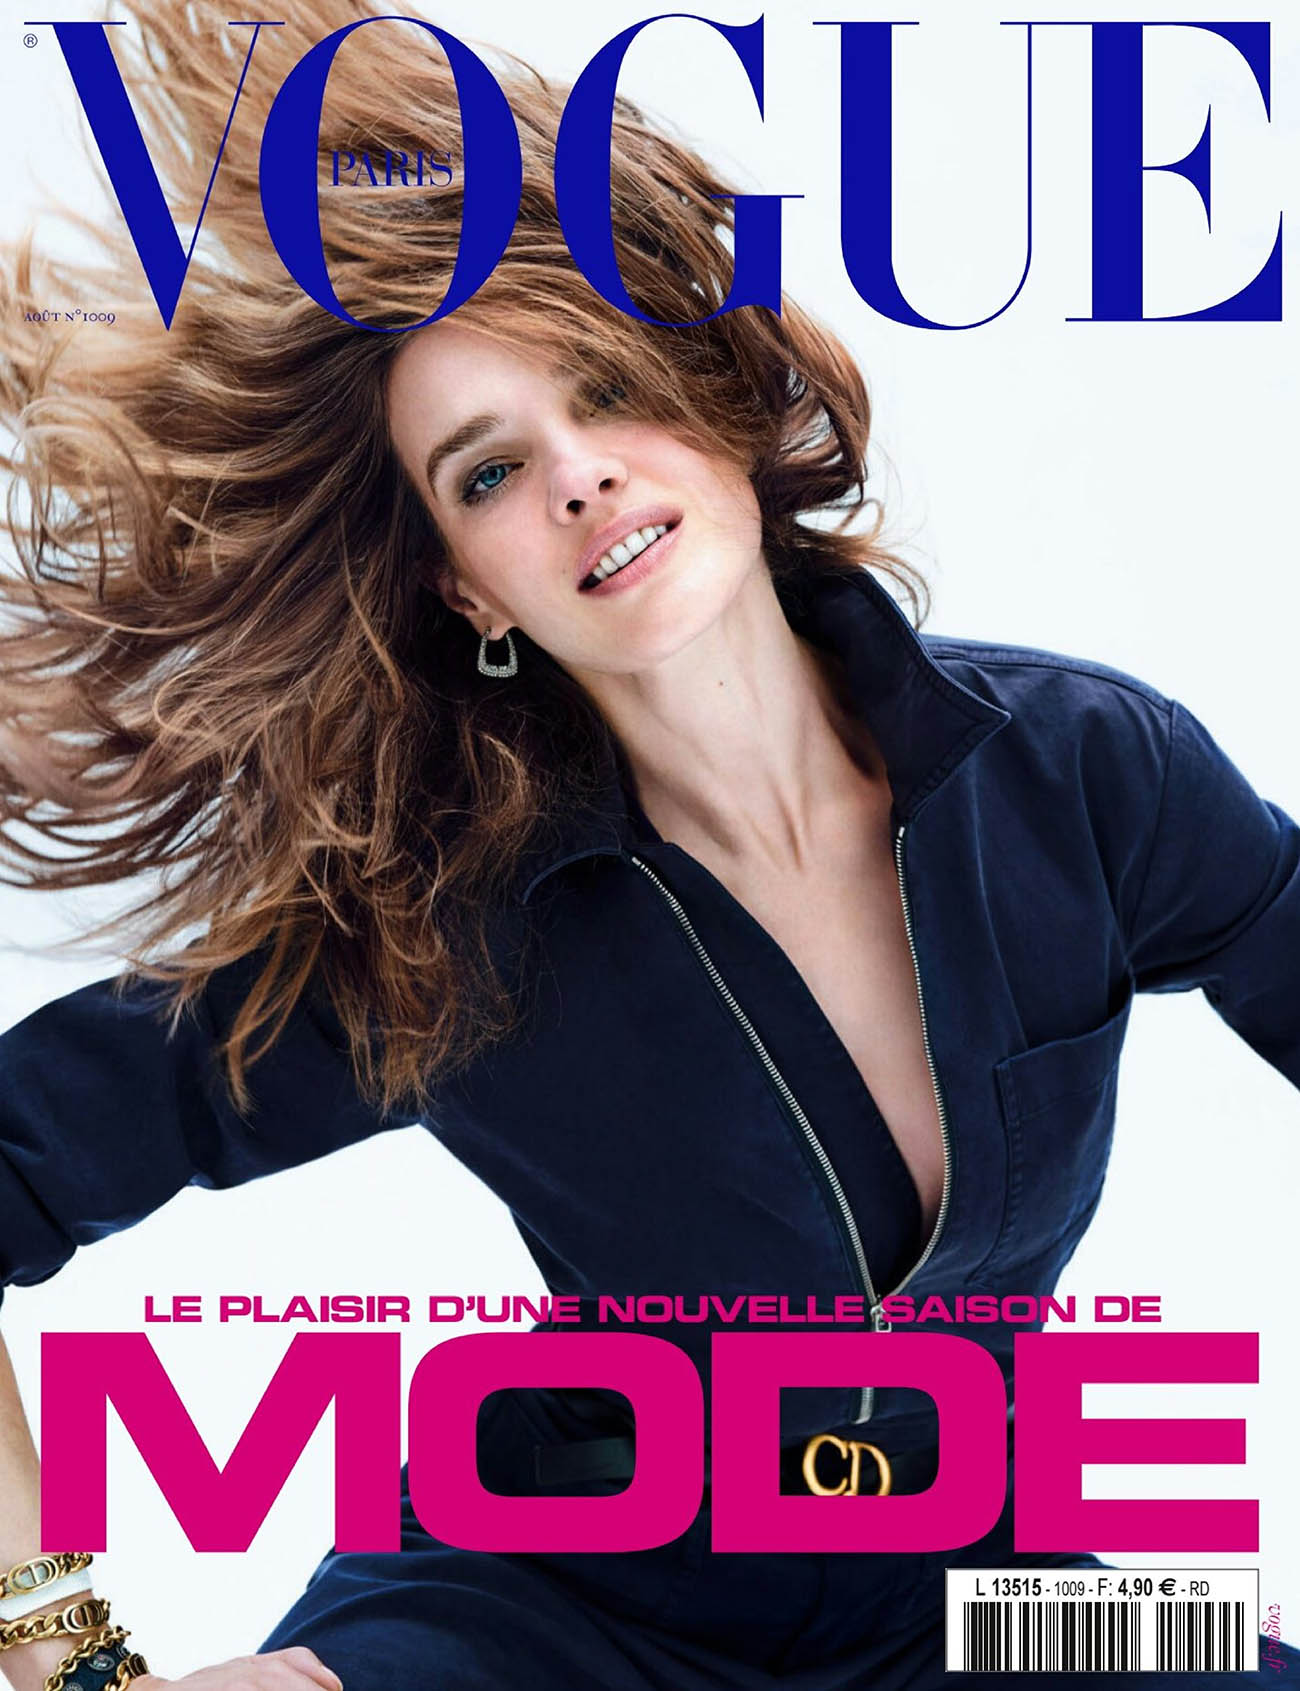 Natalia Vodianova covers Vogue Paris August 2020 by Nathaniel Goldberg